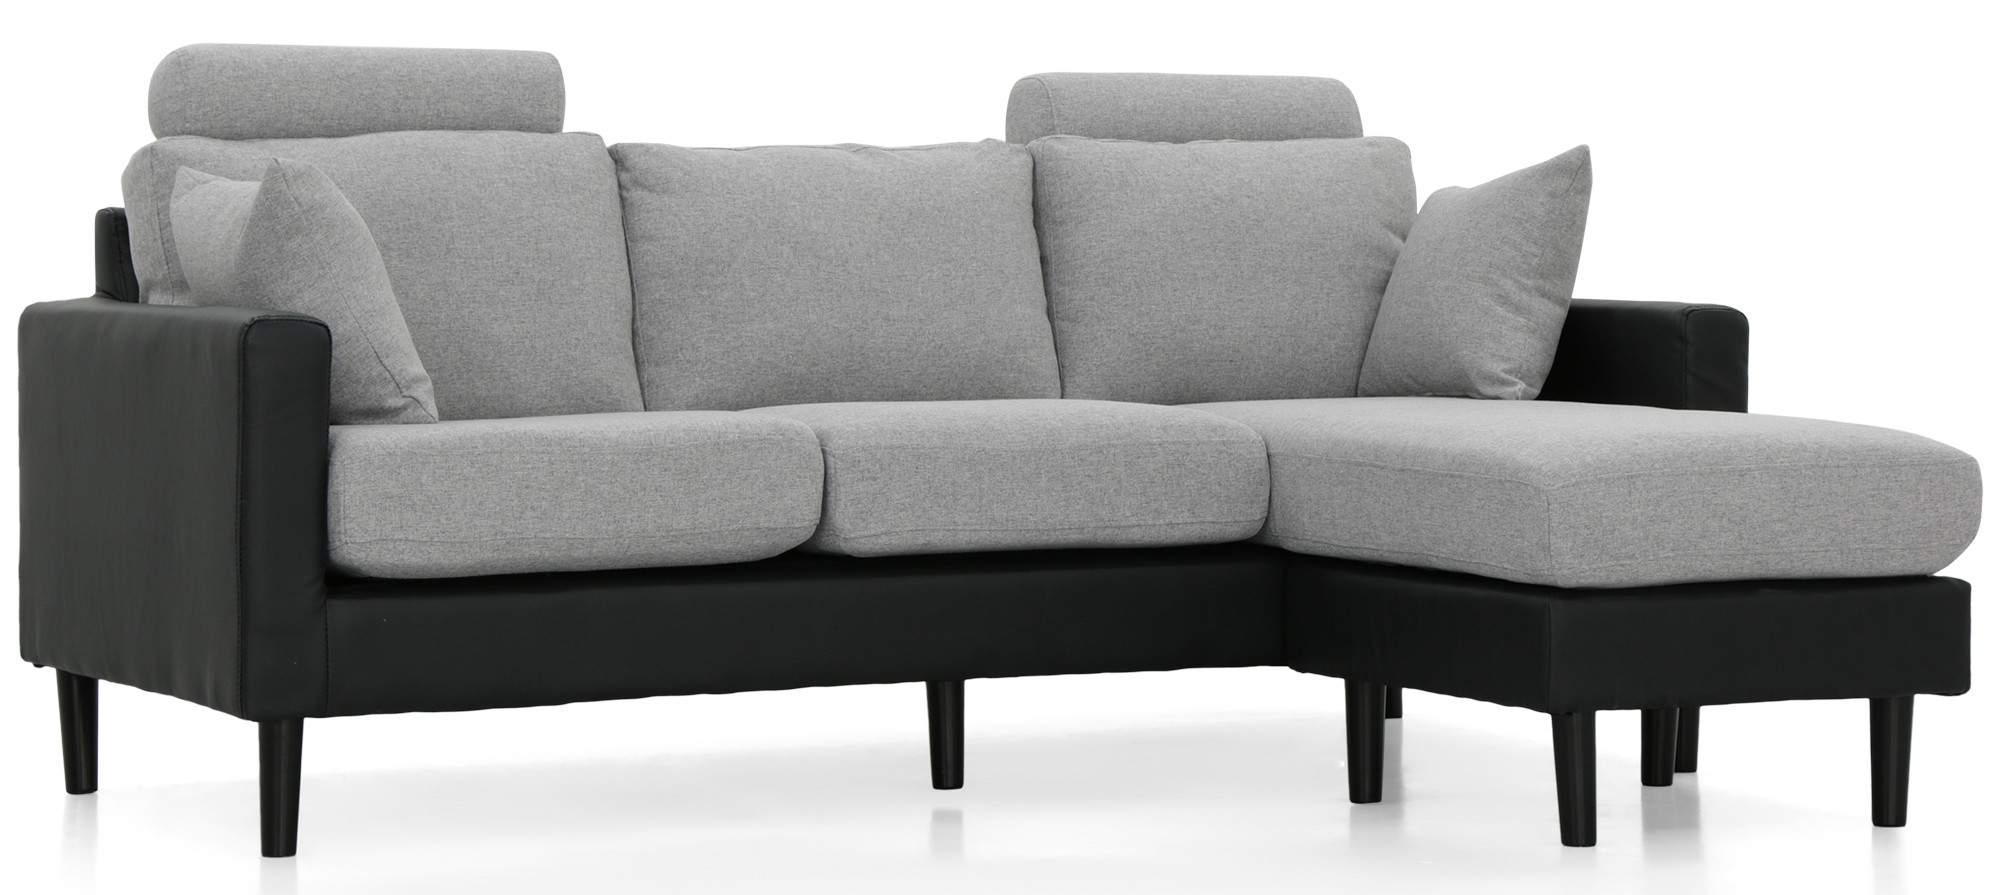 grey fabric l shaped sofa custom design los angeles earvin shape pu black with light